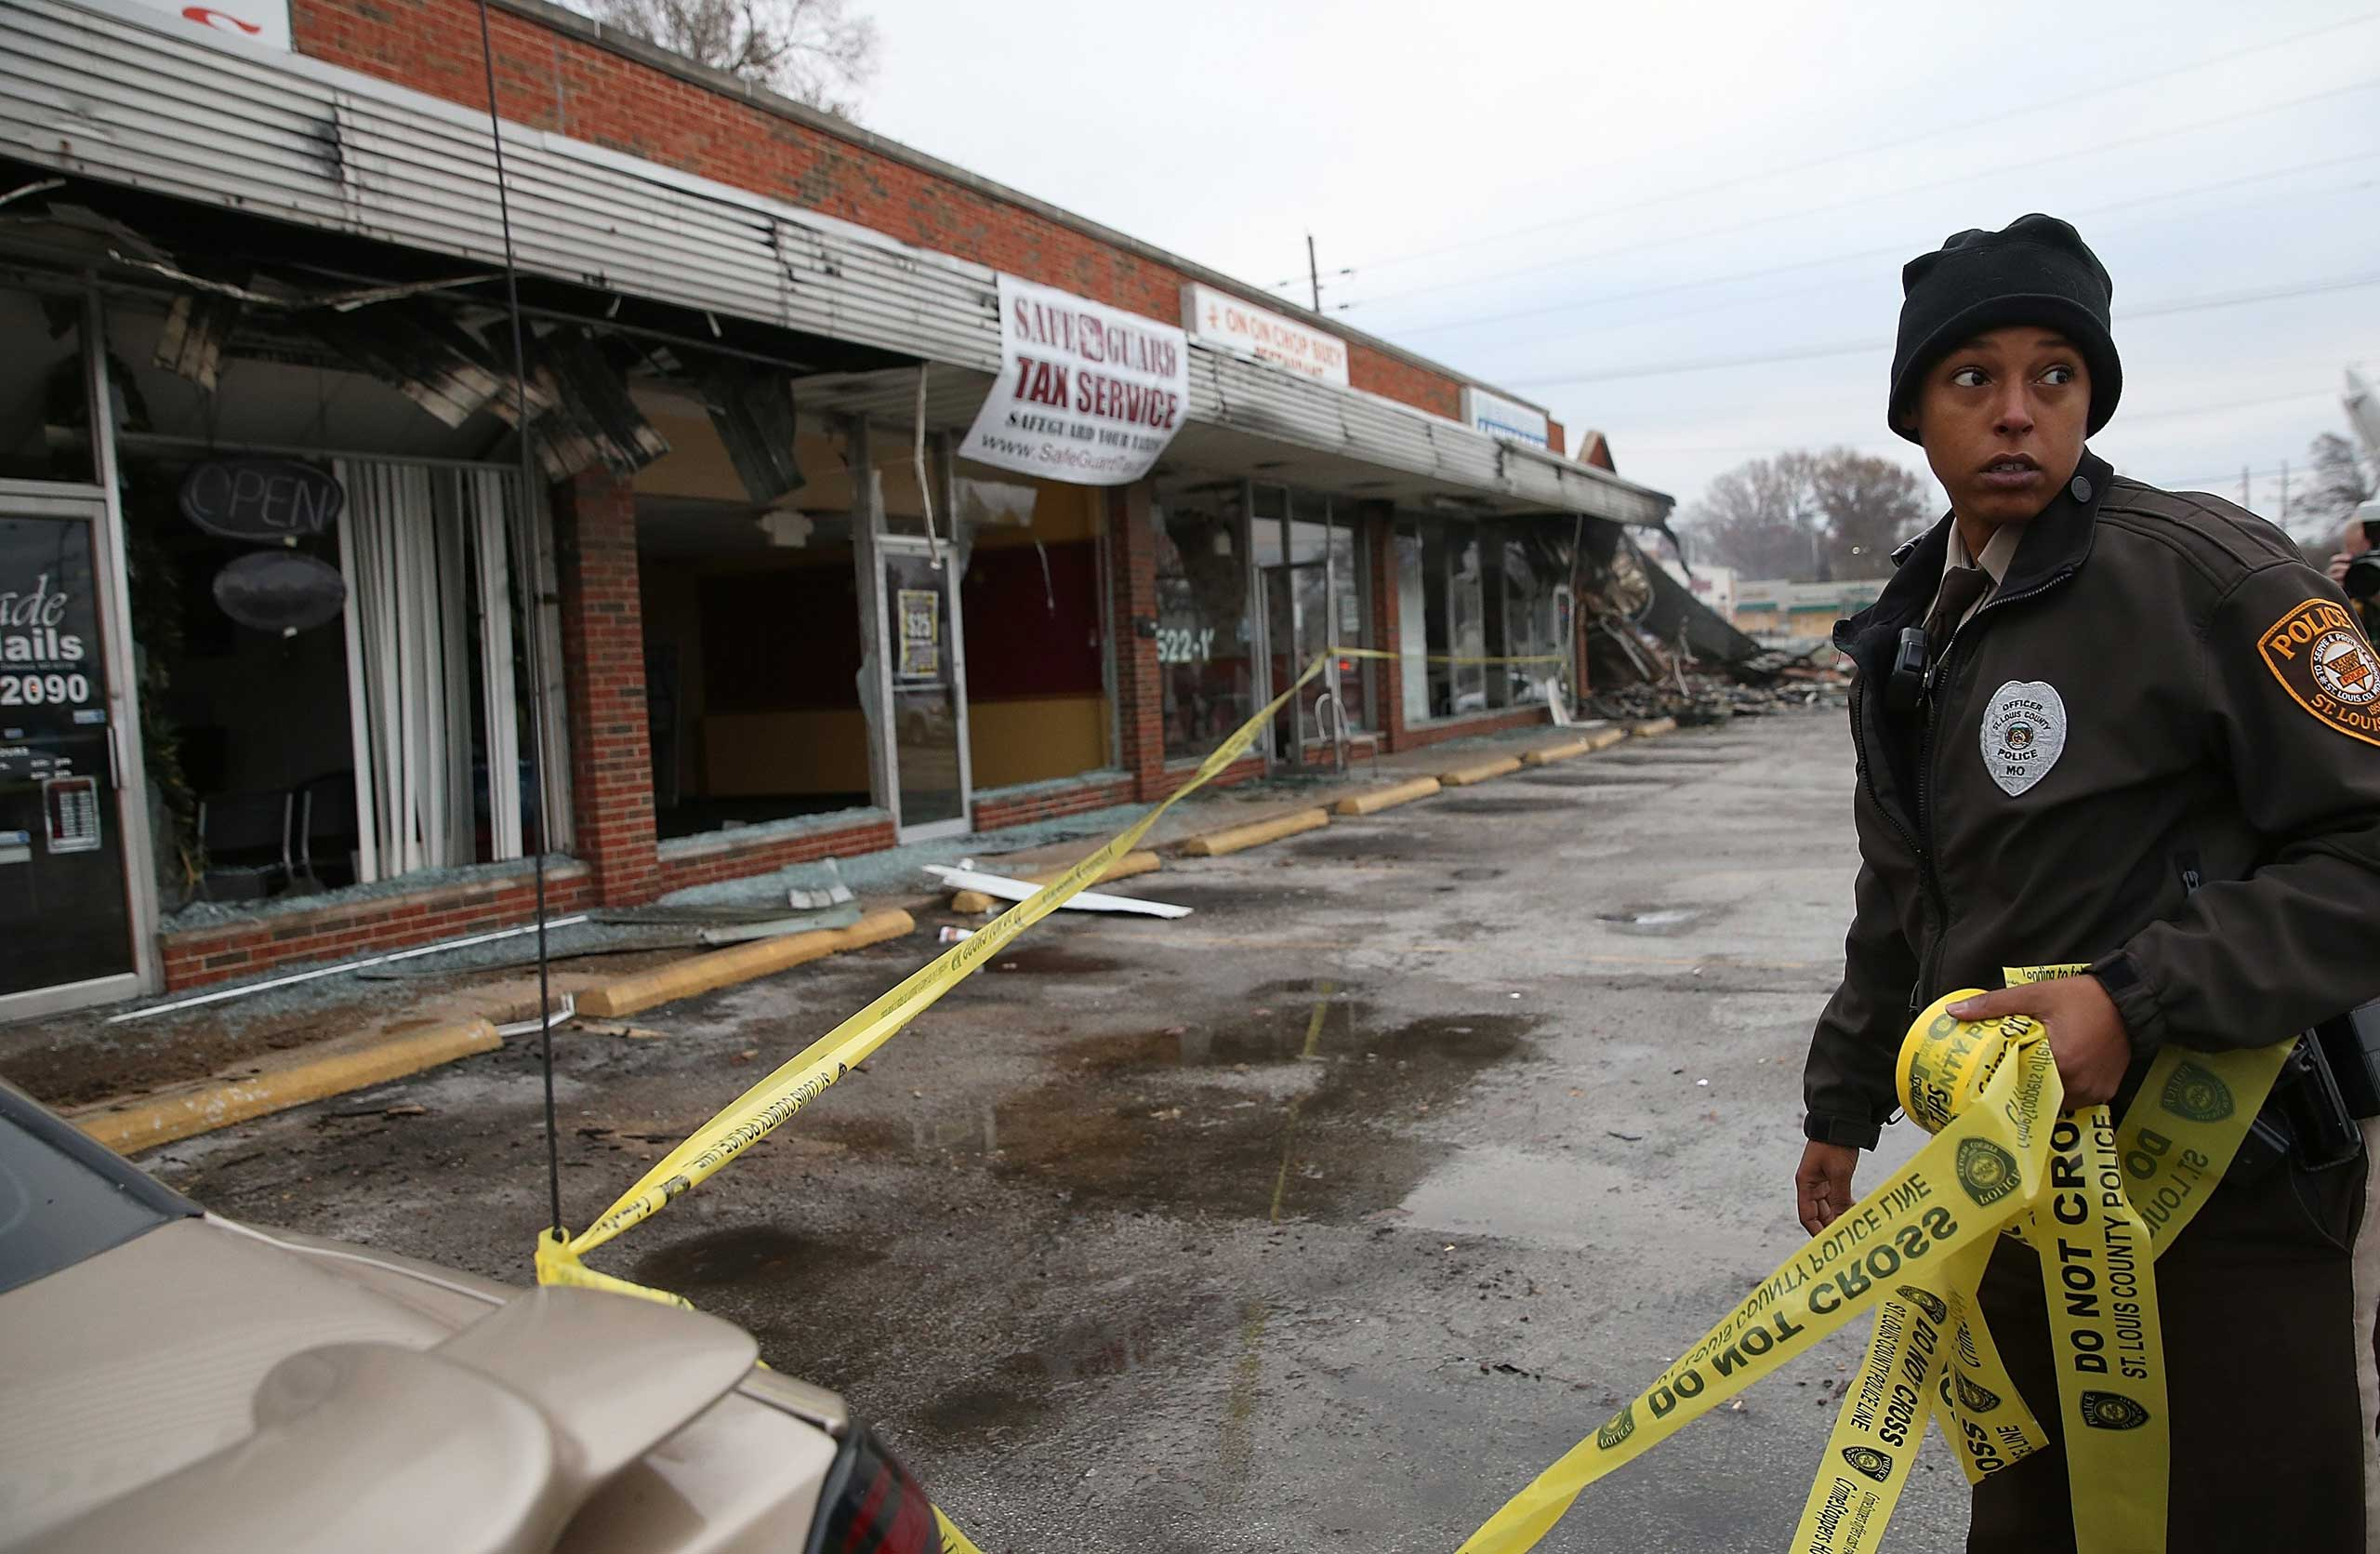 A St. Louis County police officer uses official tape to secure a building that was burned during a demonstration in Dellwood, Mo. on Nov. 25, 2014.